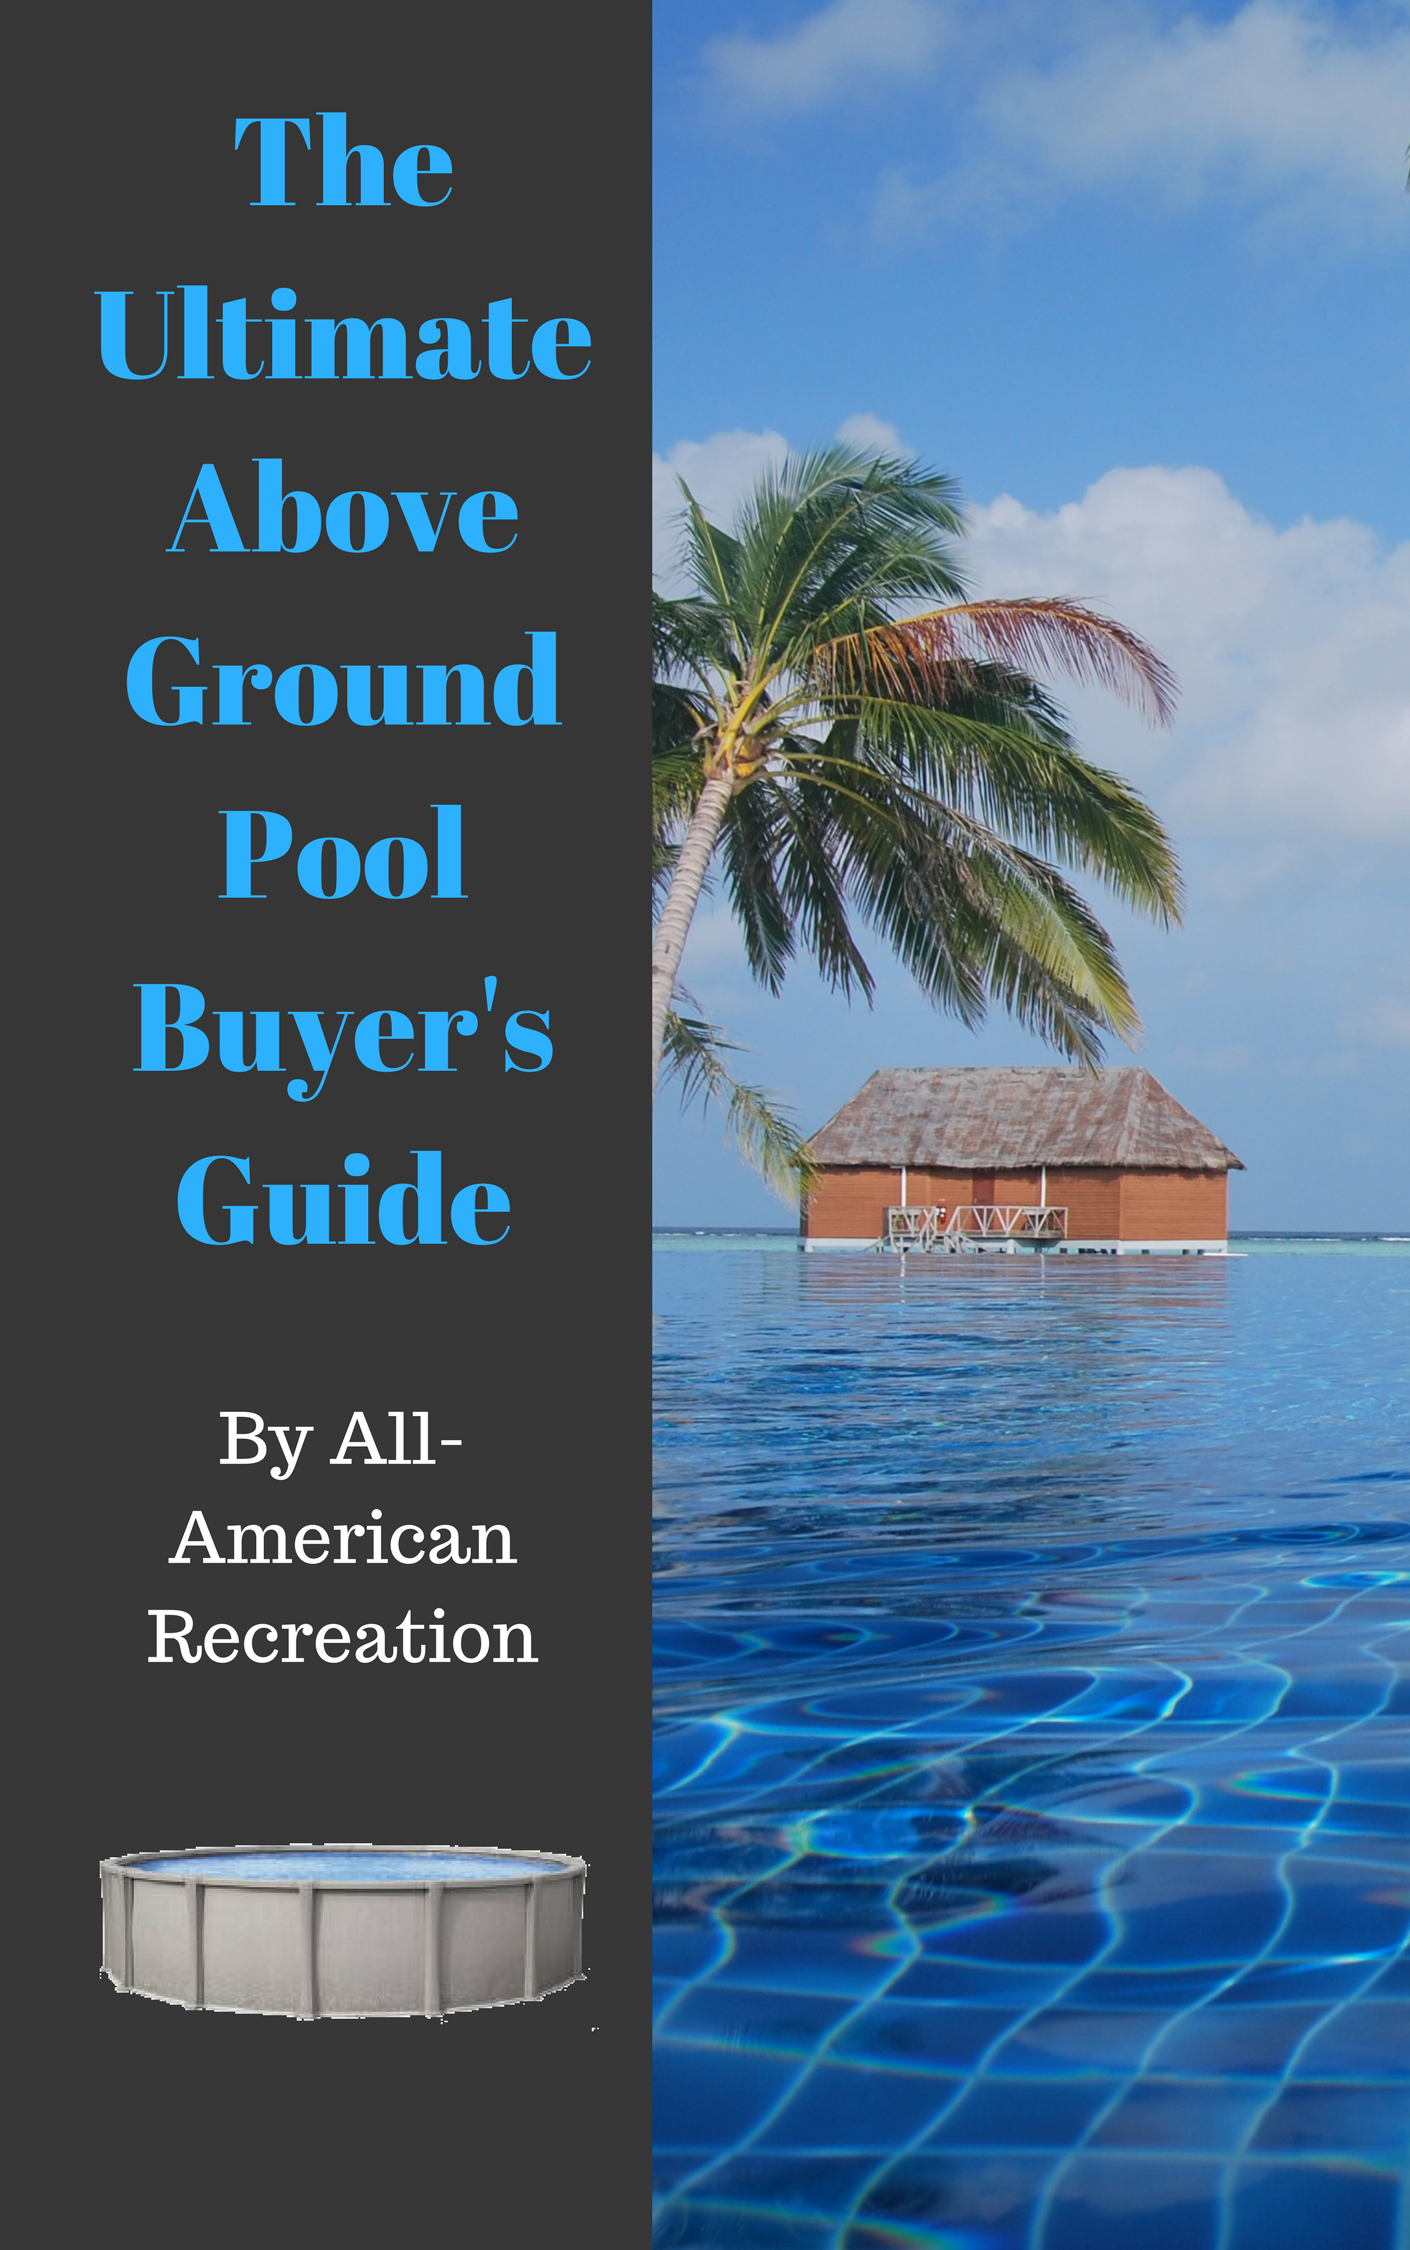 The Ultimate Above Ground Pool Buyer's Guide.png